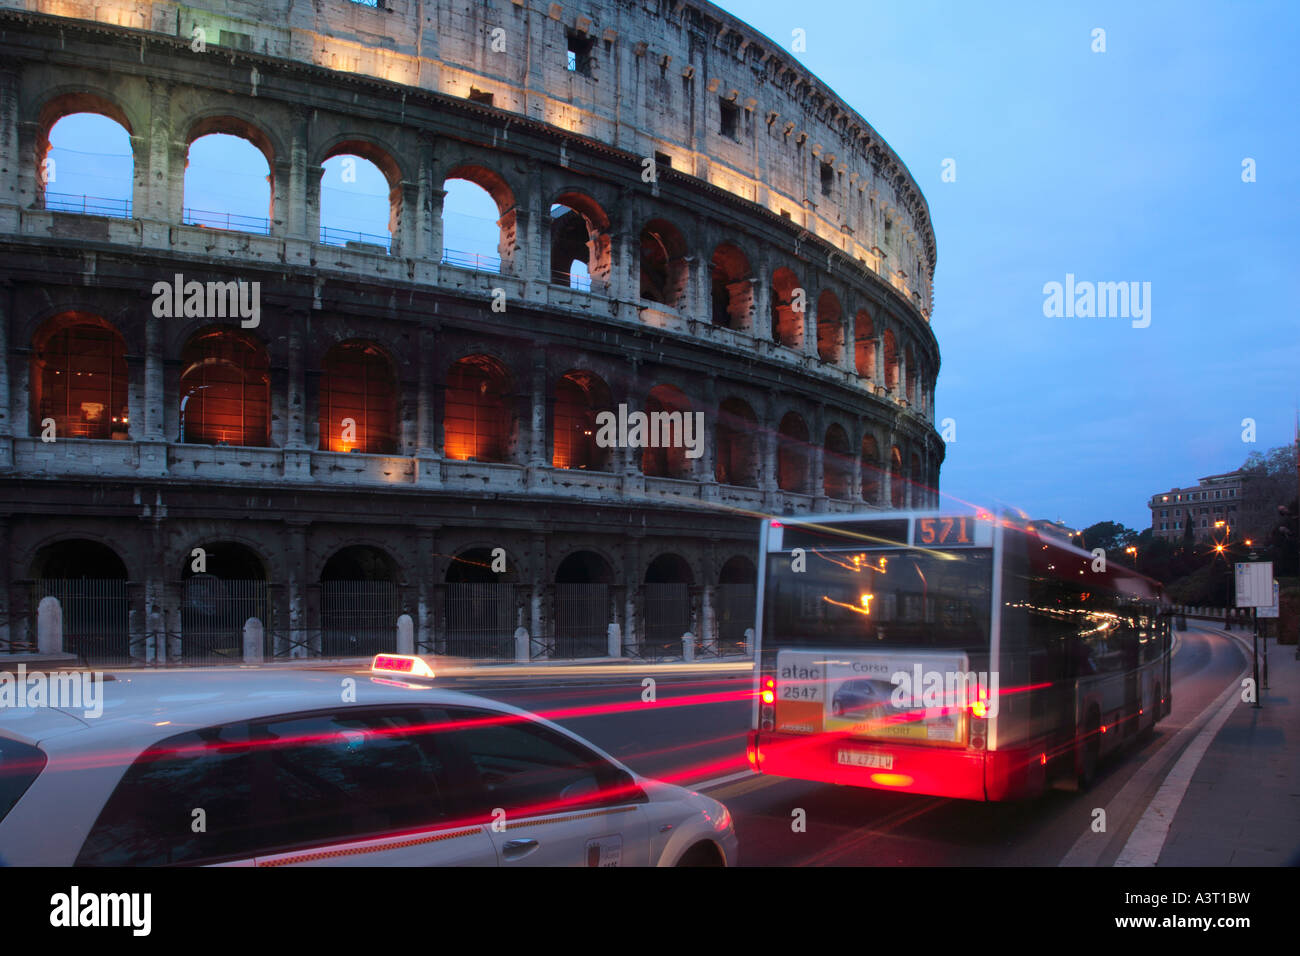 Bus and Taxi passing The Colosseum on the Via Dei Fori Imperiali in rush hour traffic Rome Italy - Stock Image